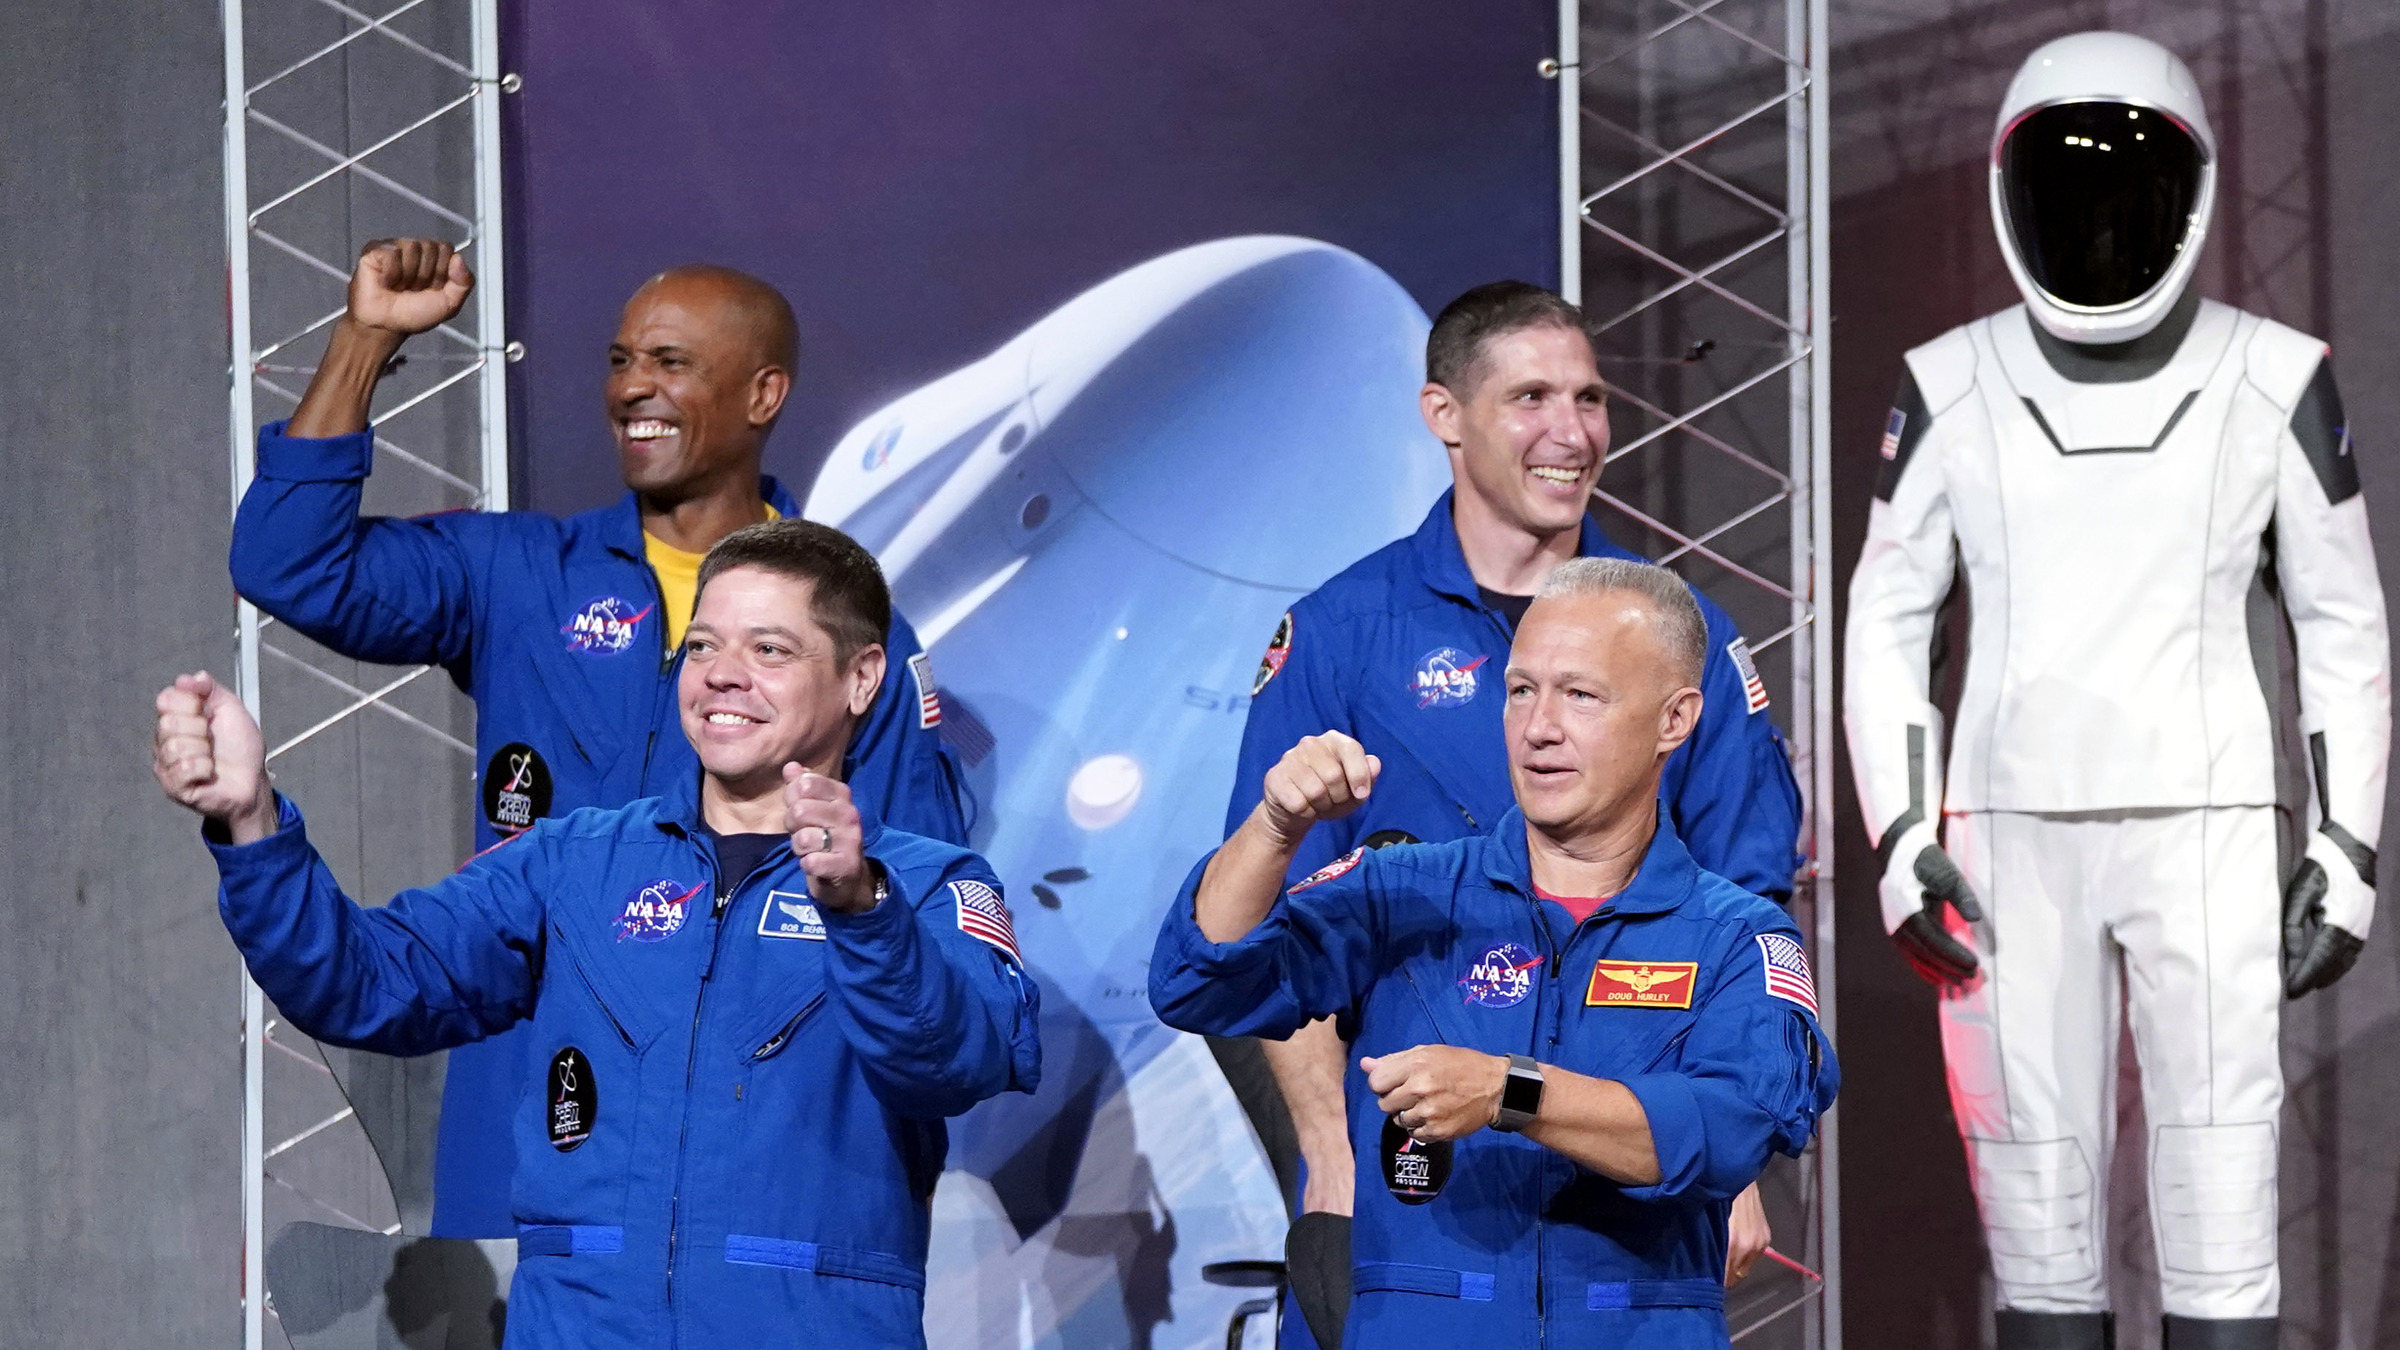 Astronauts, from left to right, Victor Glover, Robert Behnken, Michael Hopkins and Douglas Hurley, acknowledge the crowd after being introduced at a NASA event to announce them as astronauts assigned to crew the first flight tests and missions of the Boeing CST-100 Starliner and SpaceX Crew Dragon, Friday, Aug. 3, 2018, in Houston. The astronauts will ride the first commercial capsules into orbit next year and return human launches to the U.S.